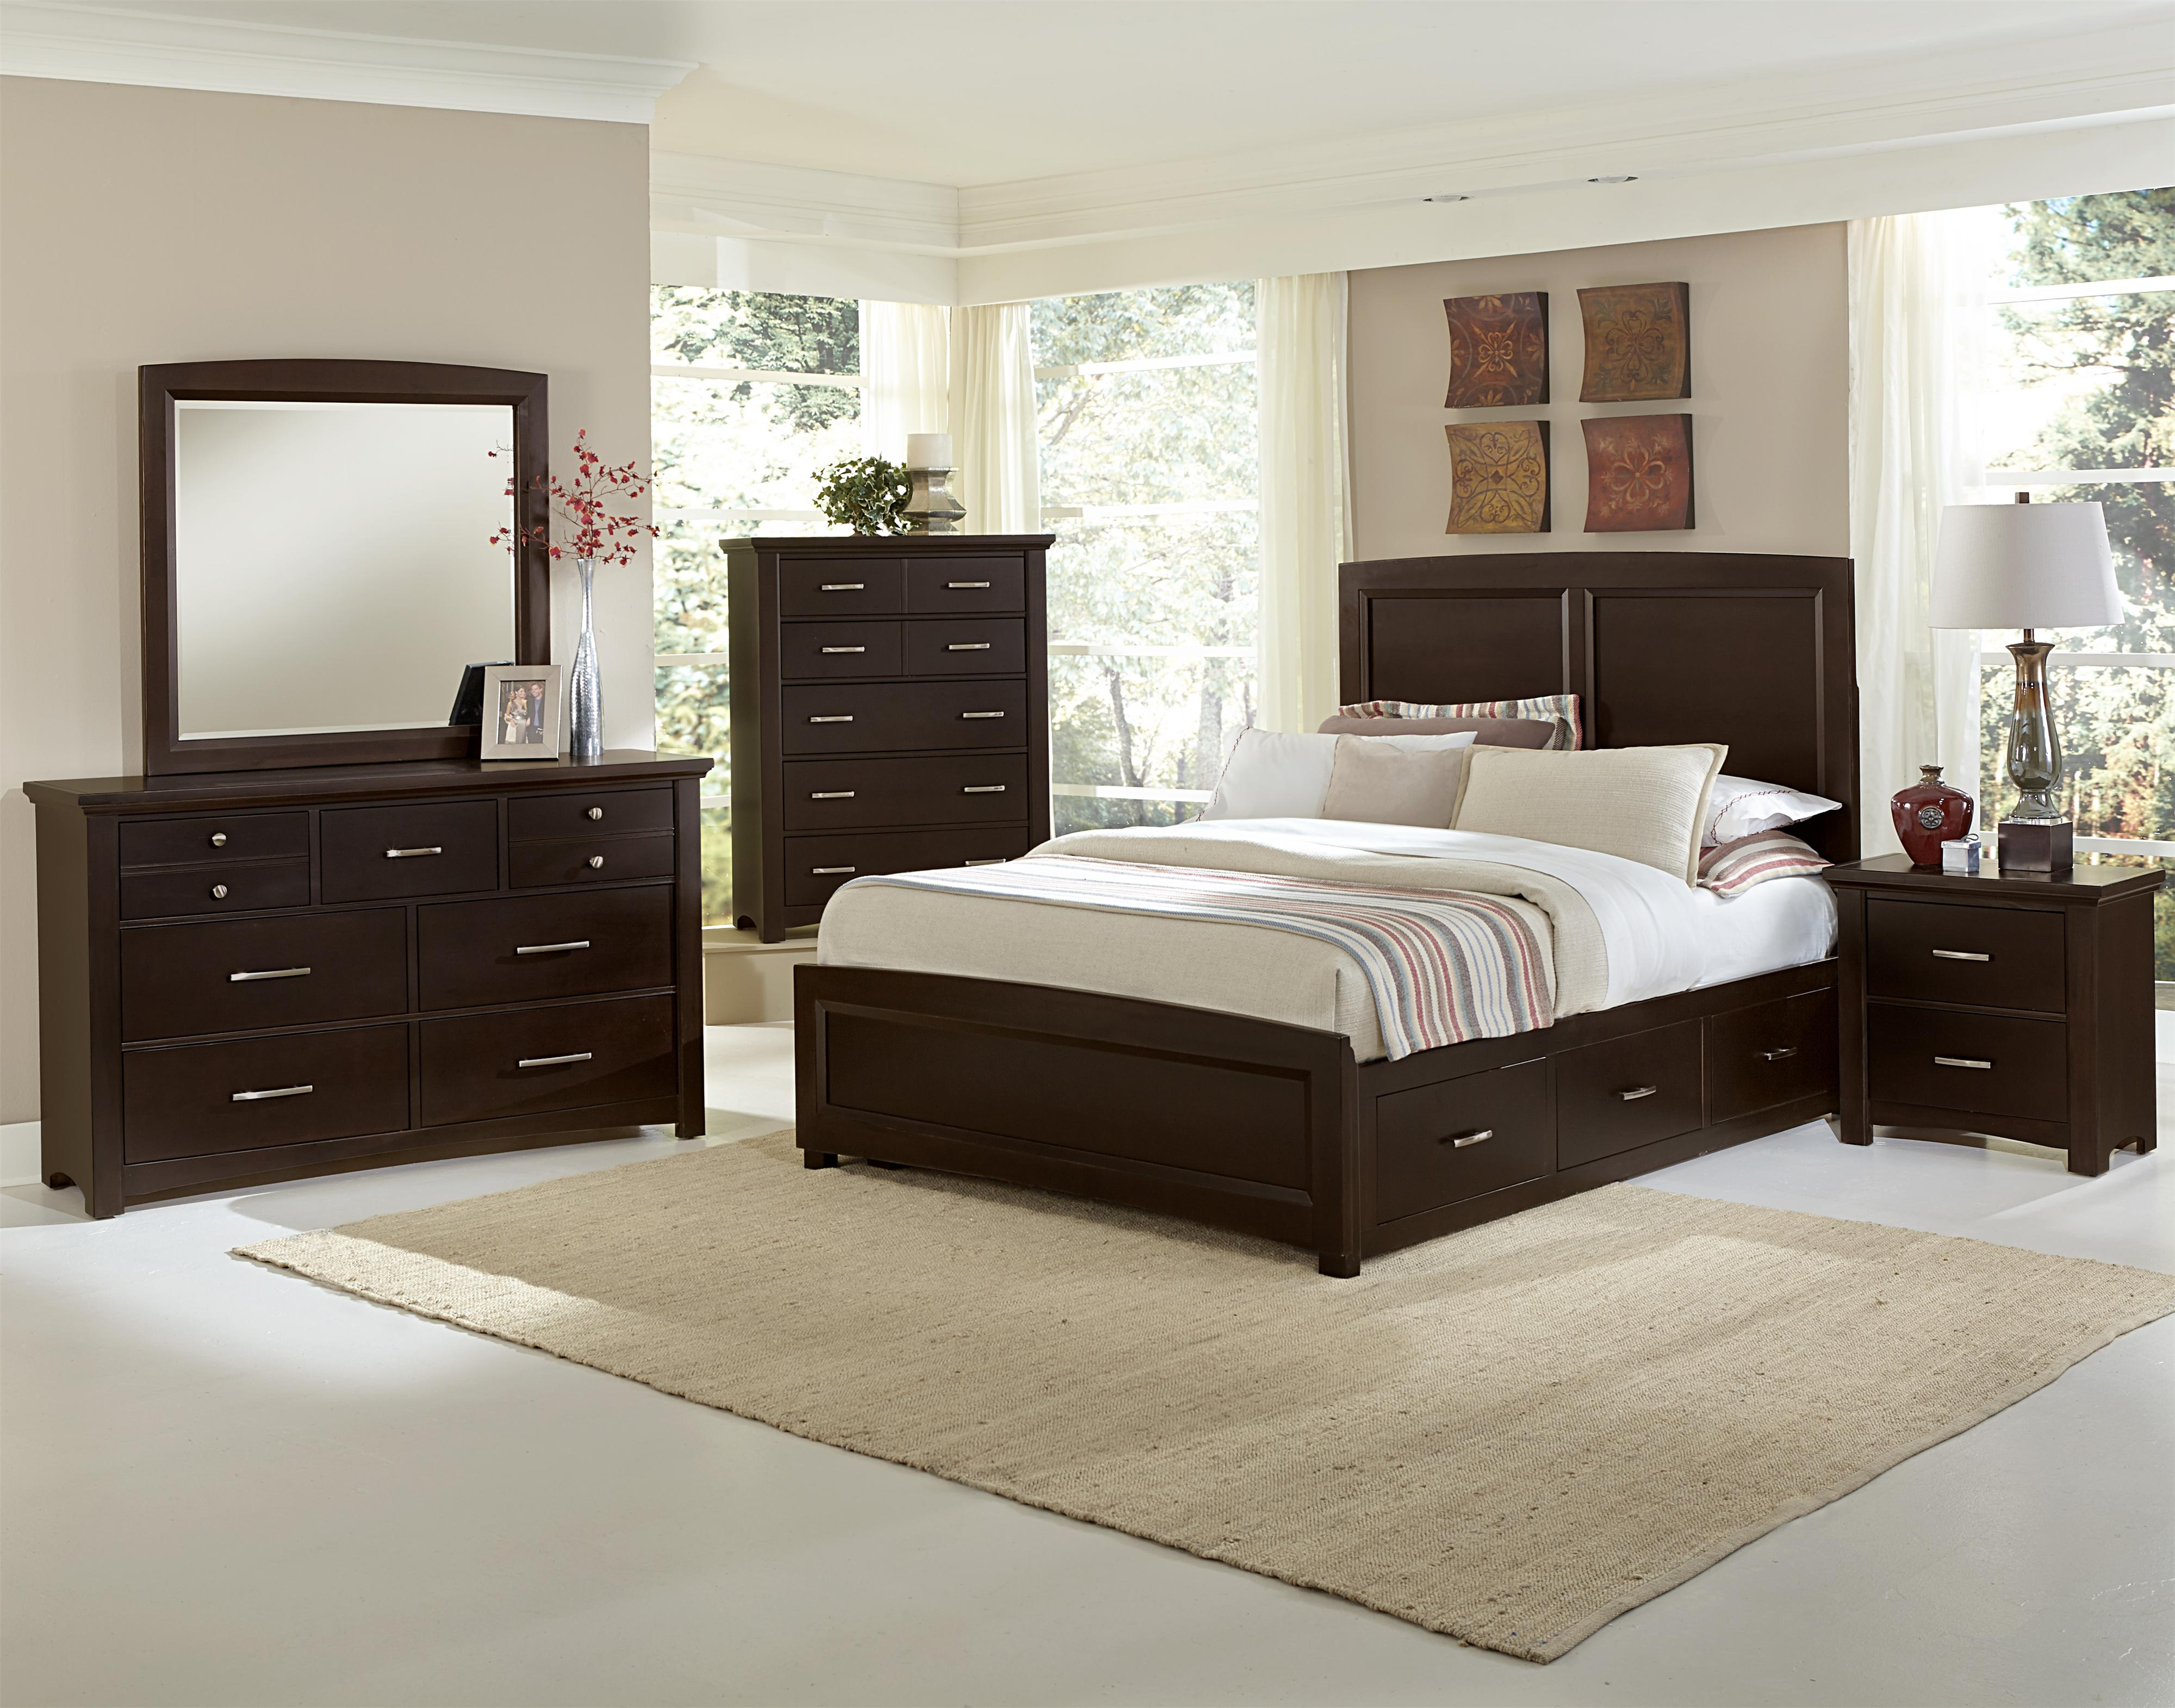 Vaughan Bassett Transitions Queen Bedroom Group - Item Number: BB67 Q Bedroom Group 2